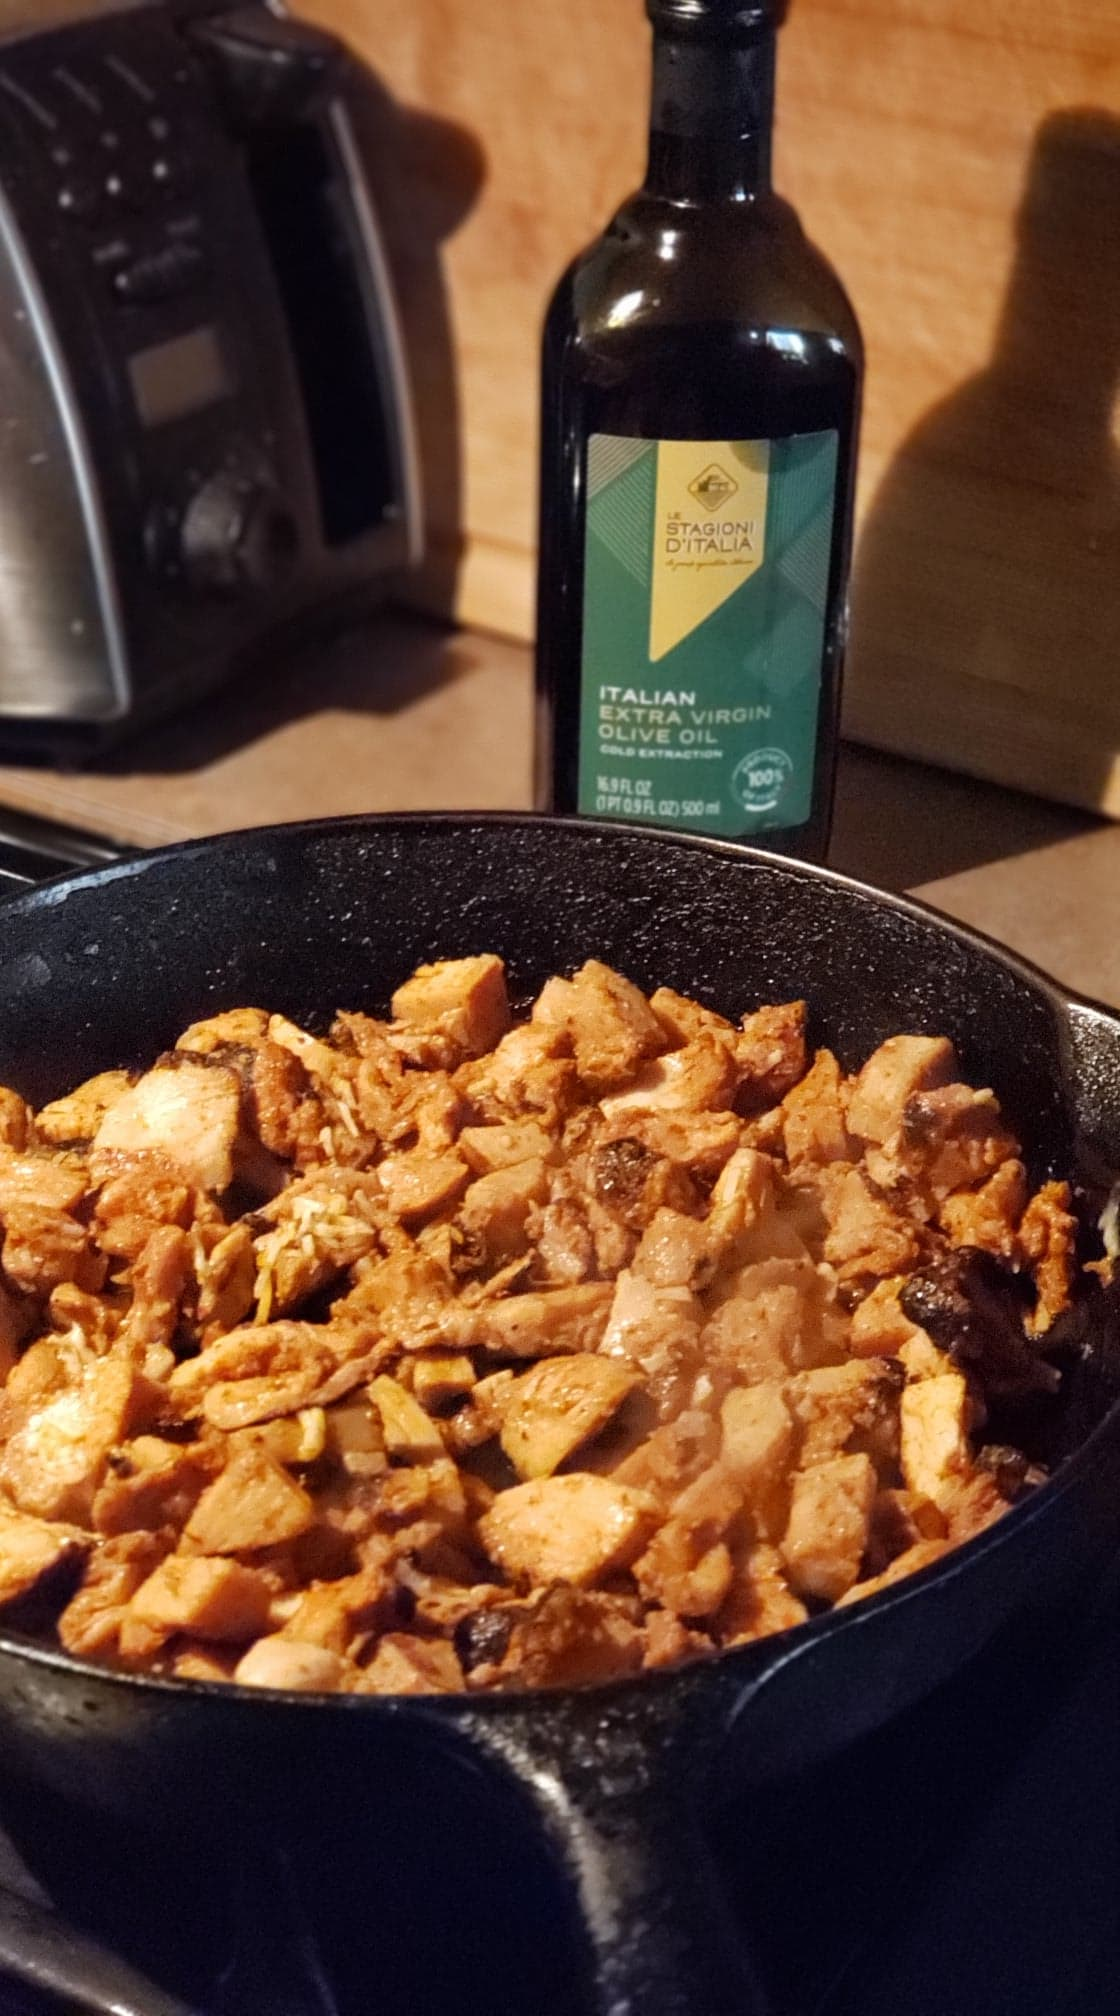 Yes, There is a Healthy Difference in Cooking Oils